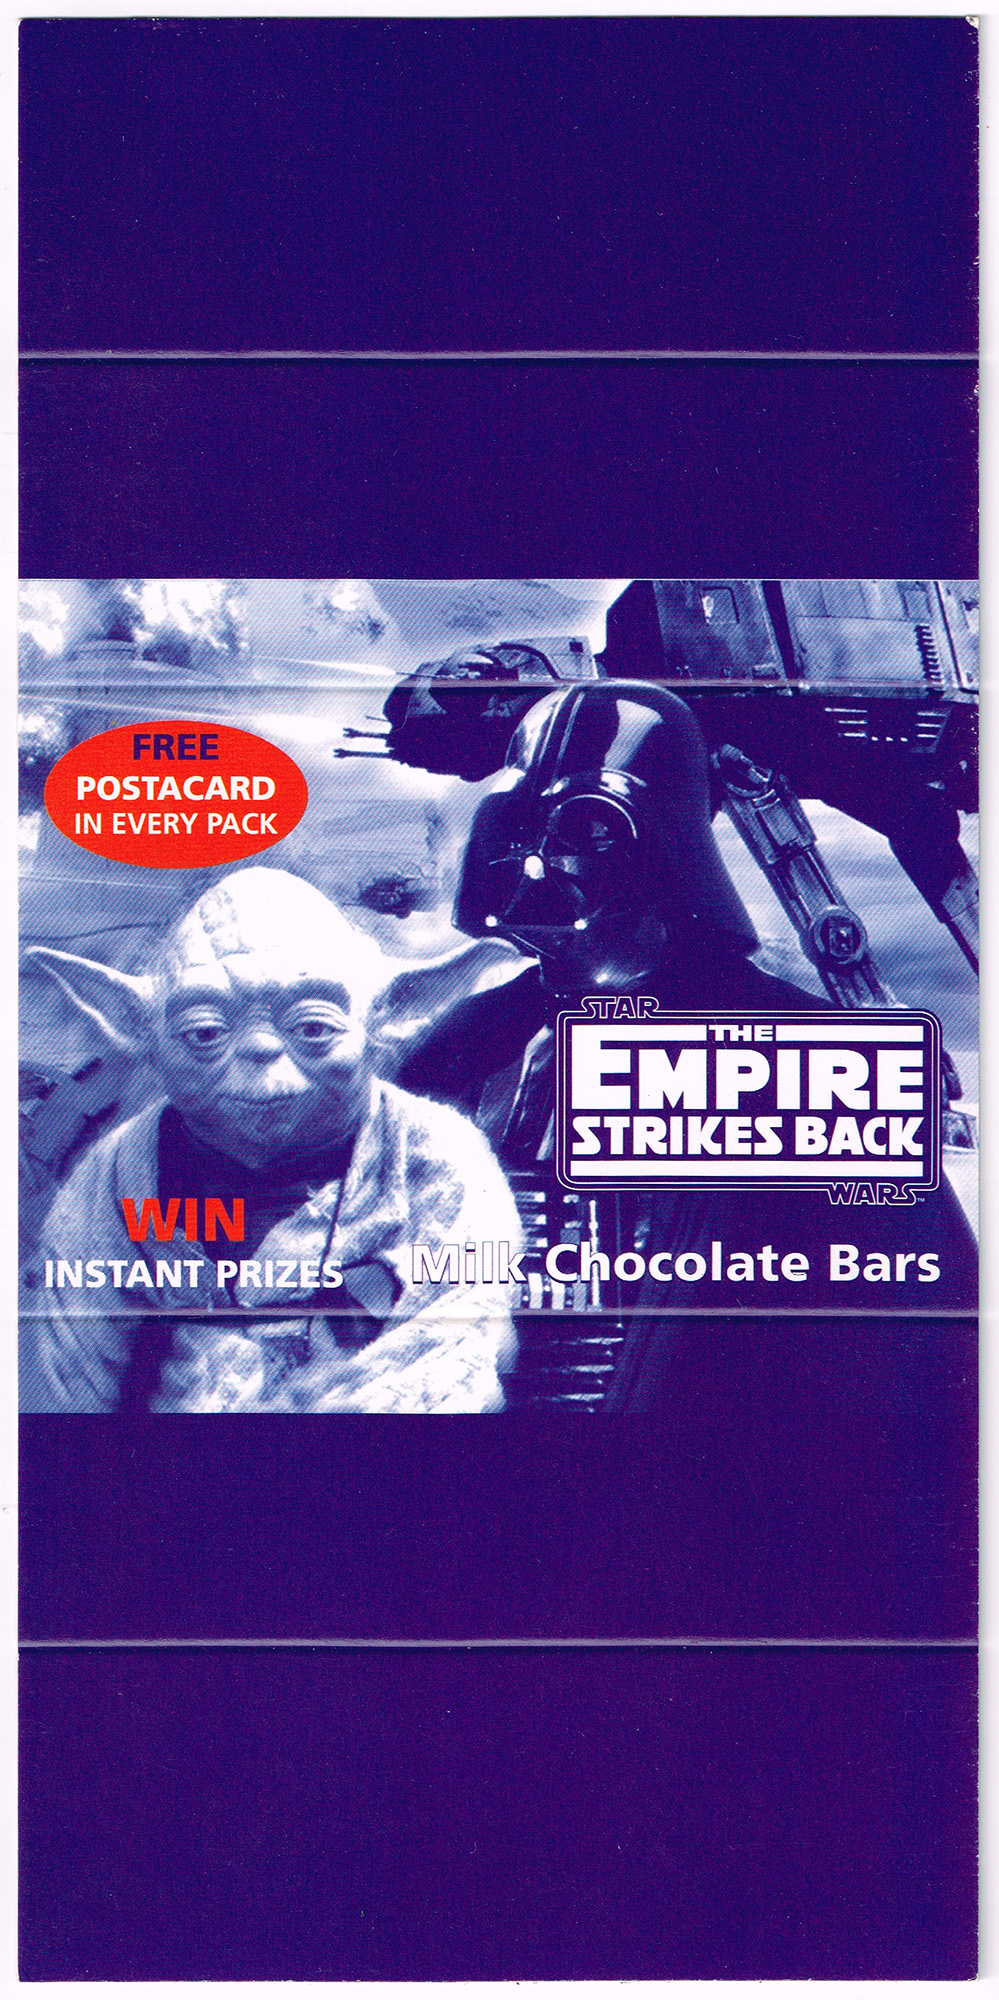 Promotional Trade Card-Wrap to hold 4 Chocolate Bars